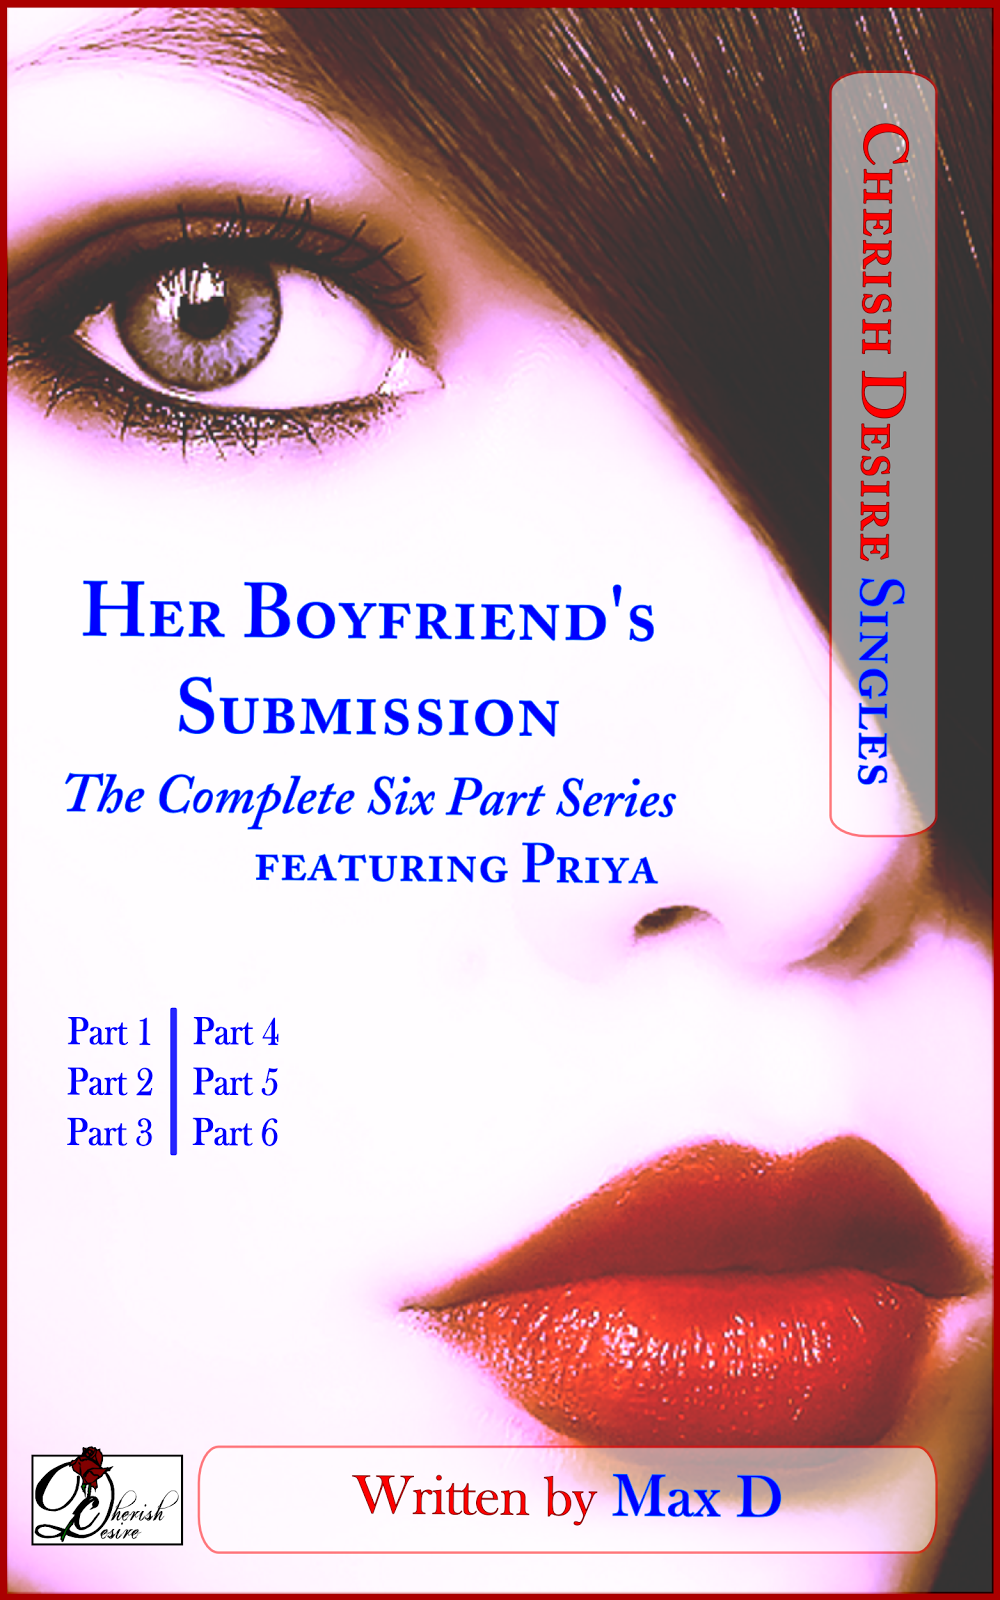 Cherish Desire Singles: Her Boyfriend's Submission (The Complete Six Part Series) featuring Priya, Max D, erotica